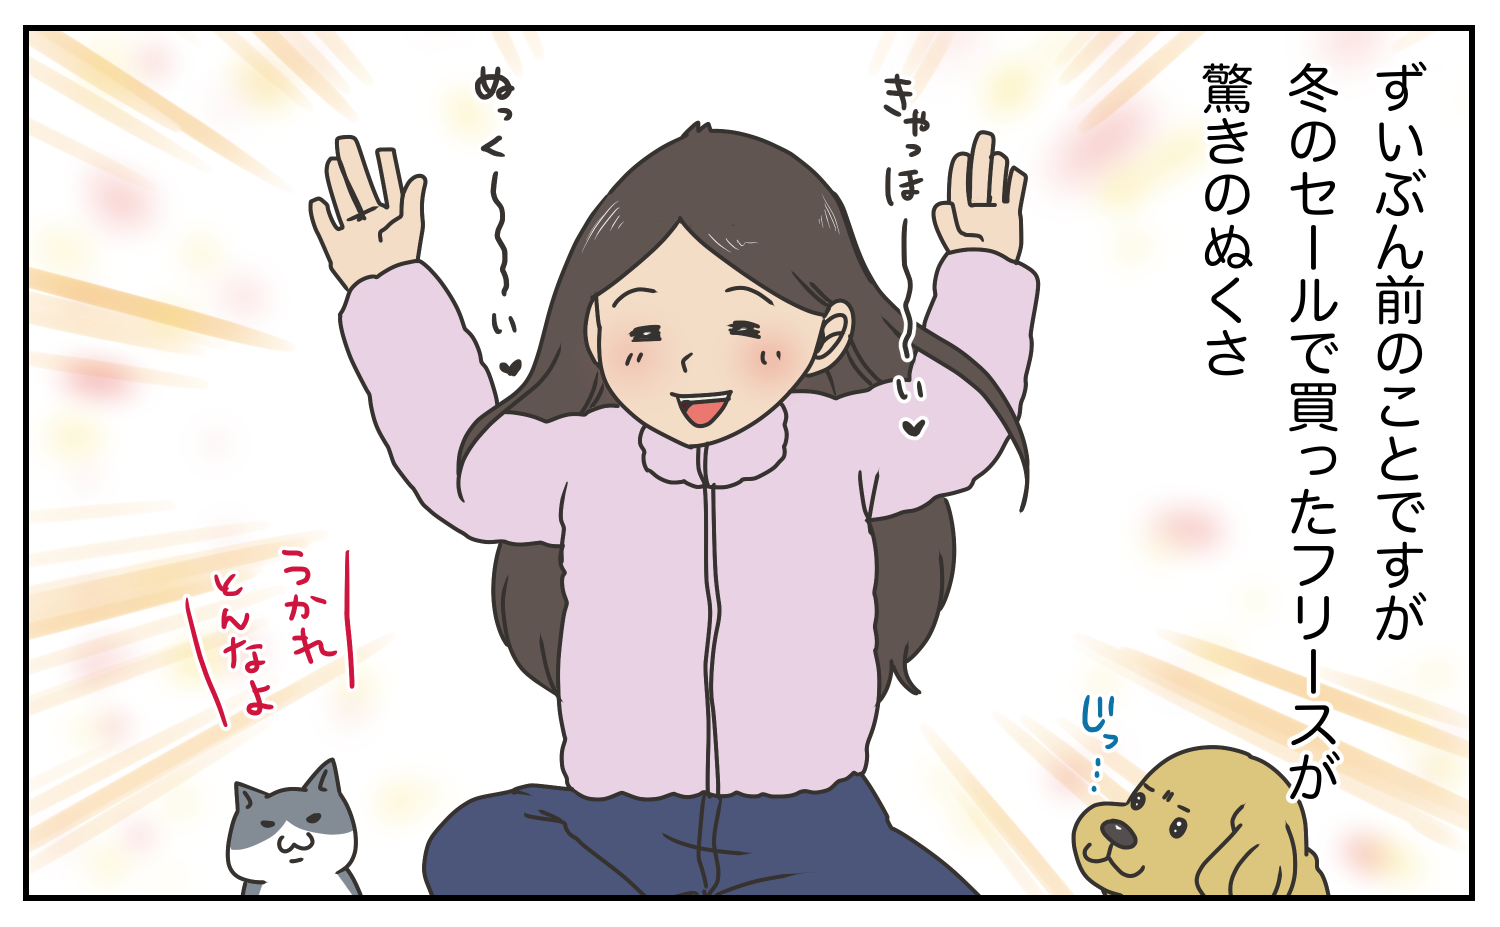 201803192240055fc.png